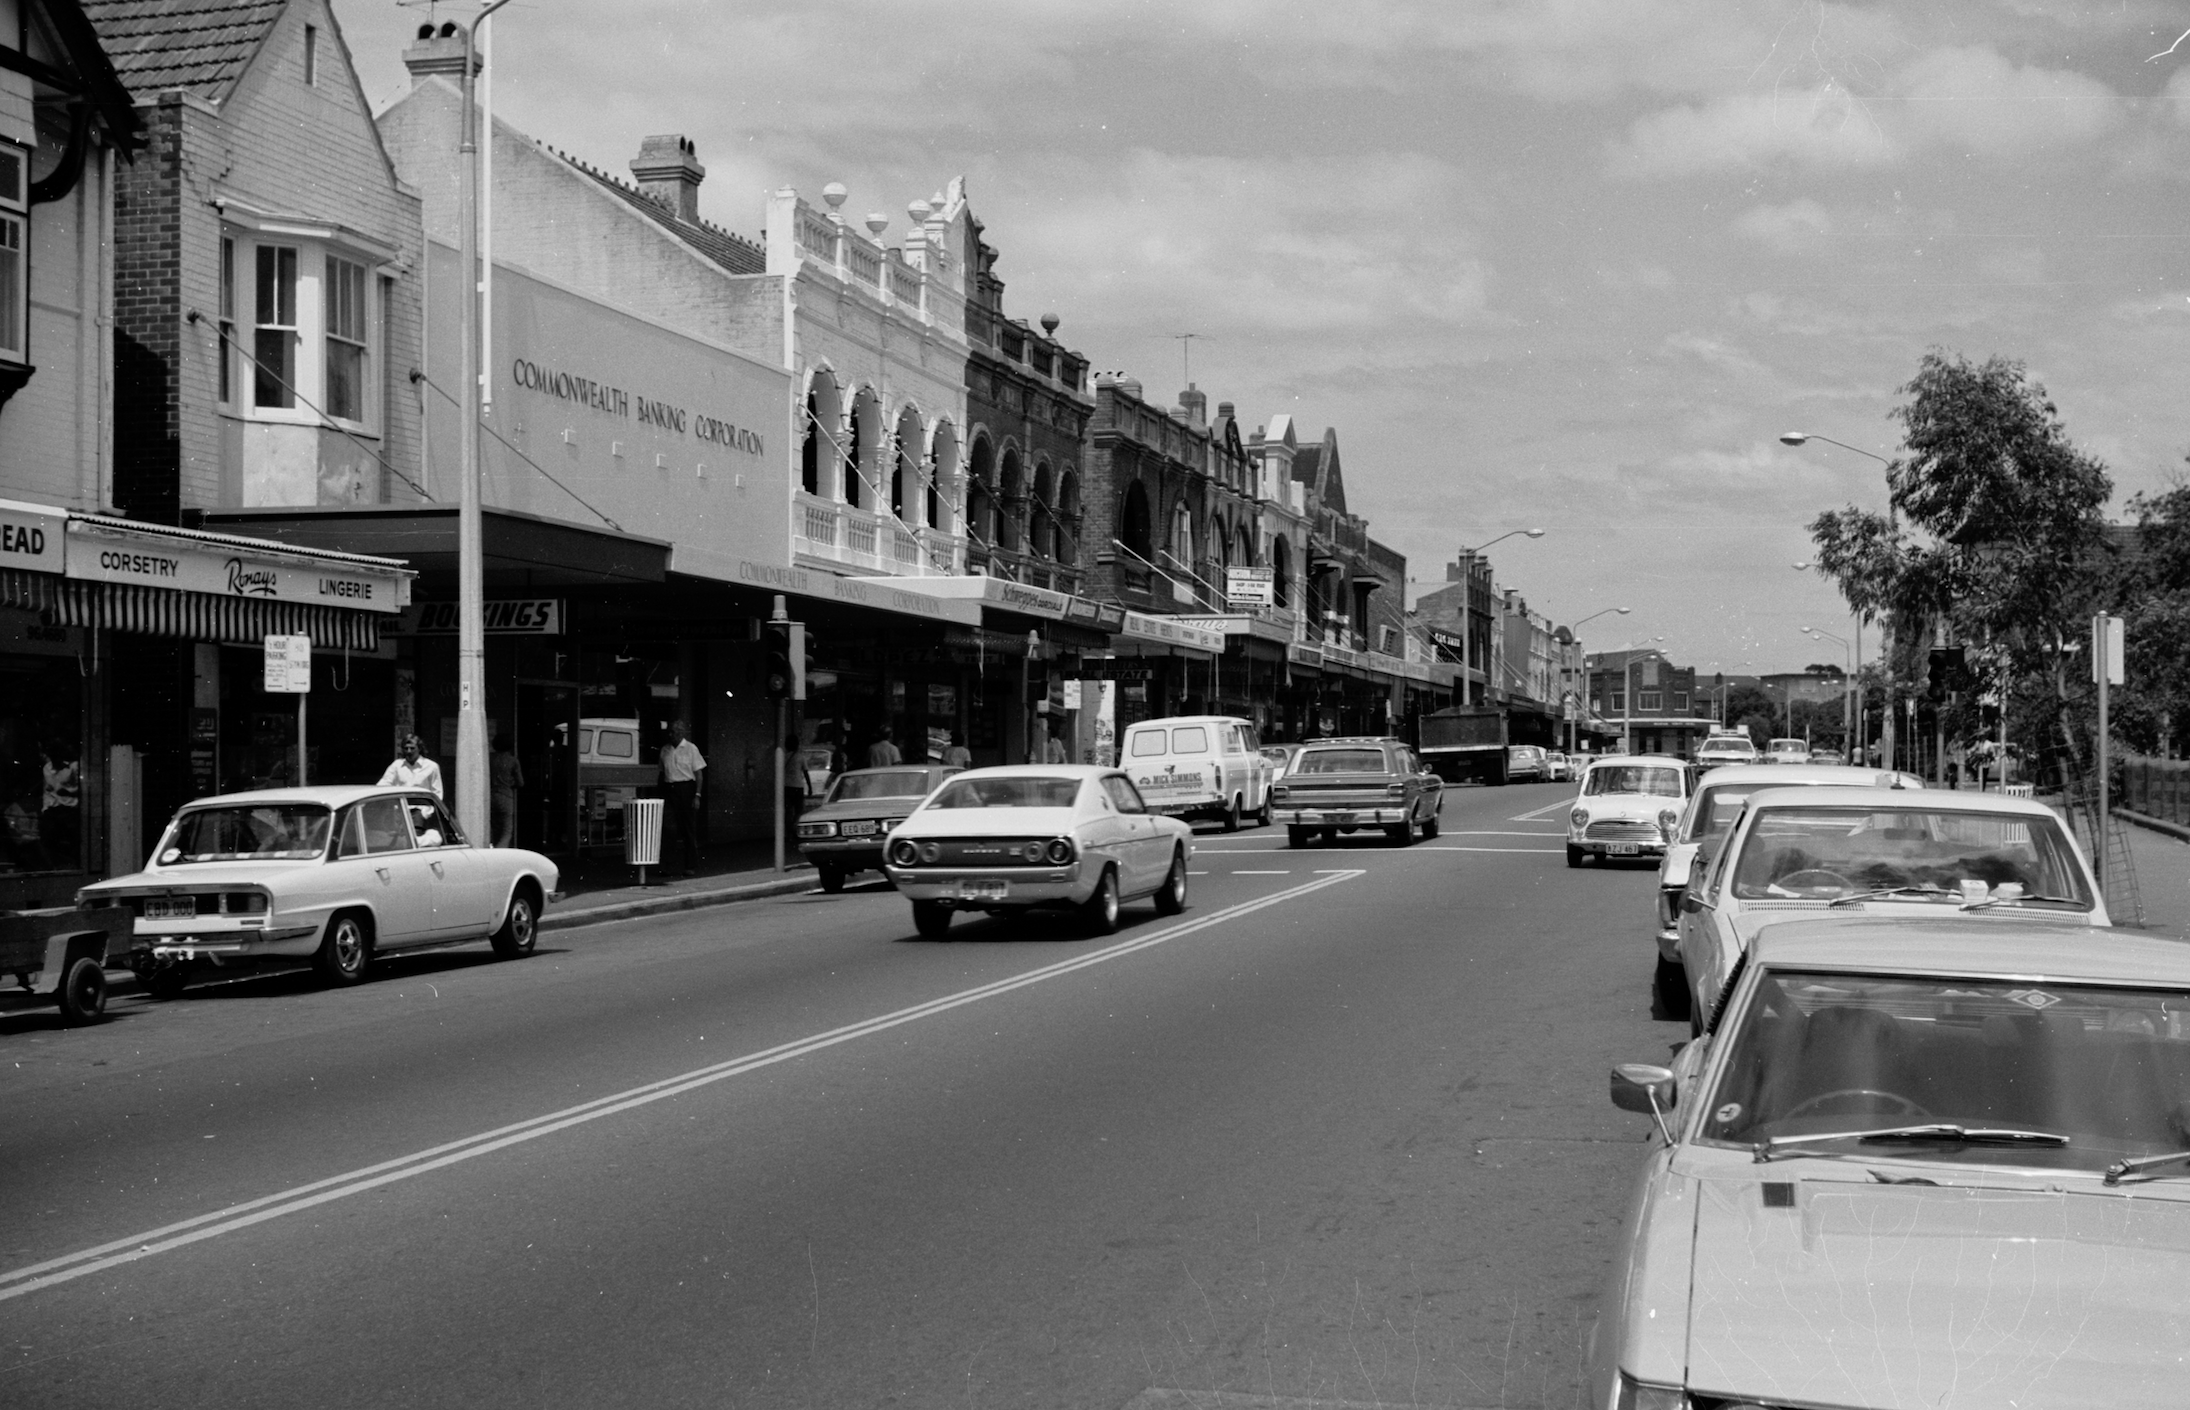 Military Rd, Mosman in the 70's.